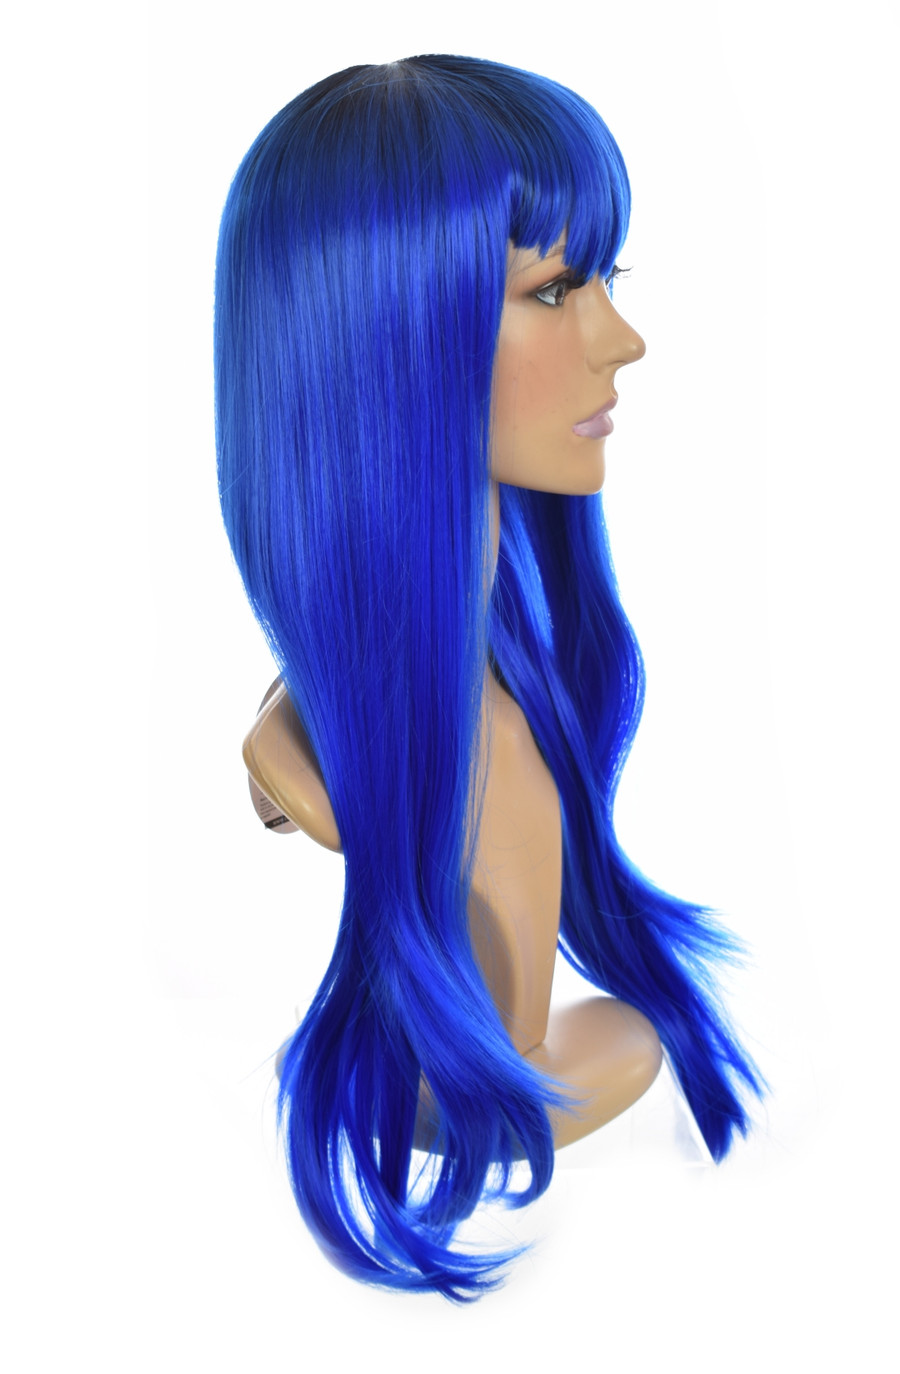 Blue  Straight Long Wig. Xtina Blue Ink